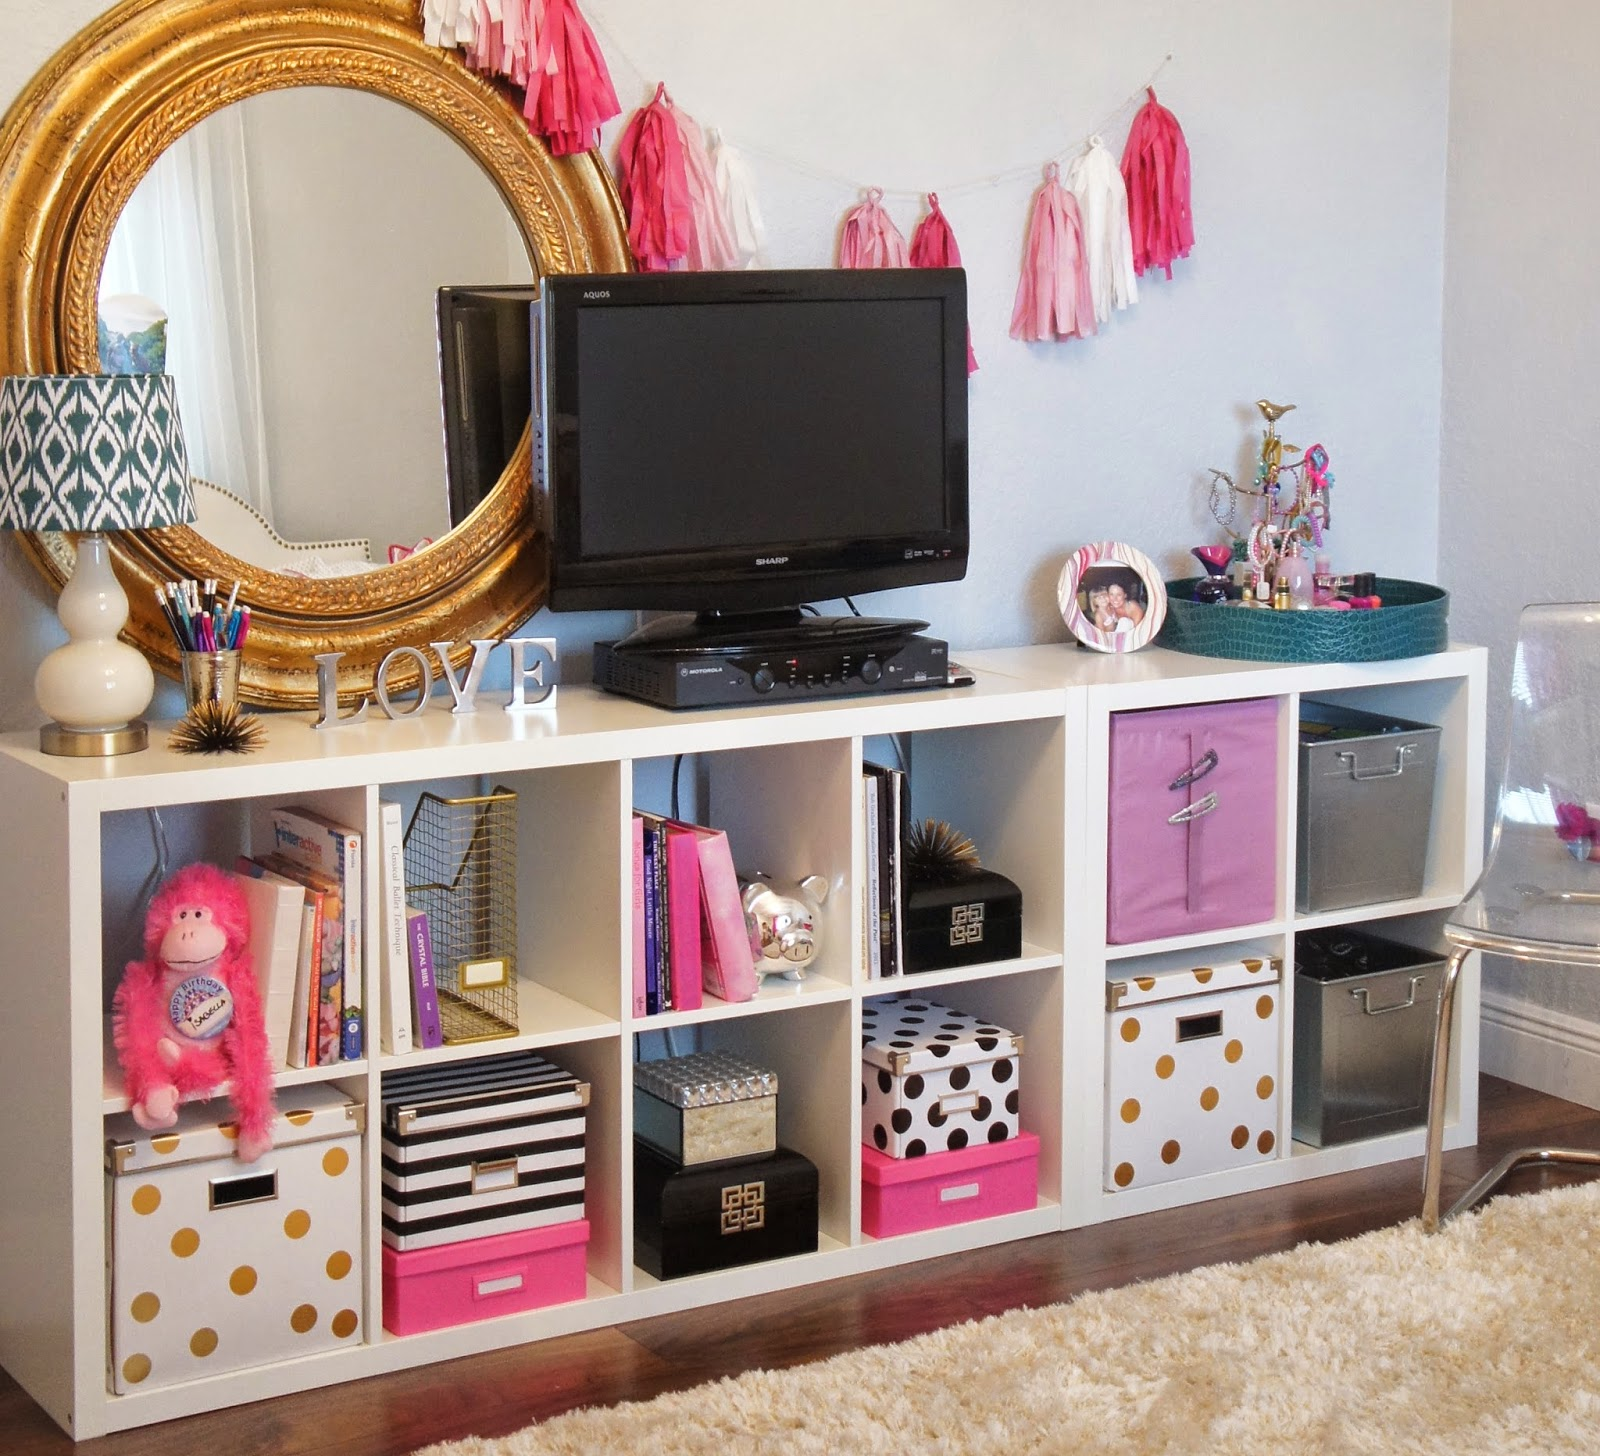 Diy Room Decor And Organization Ideas The Cuban In My Coffee Diy Kate Spade Inspired Ikea